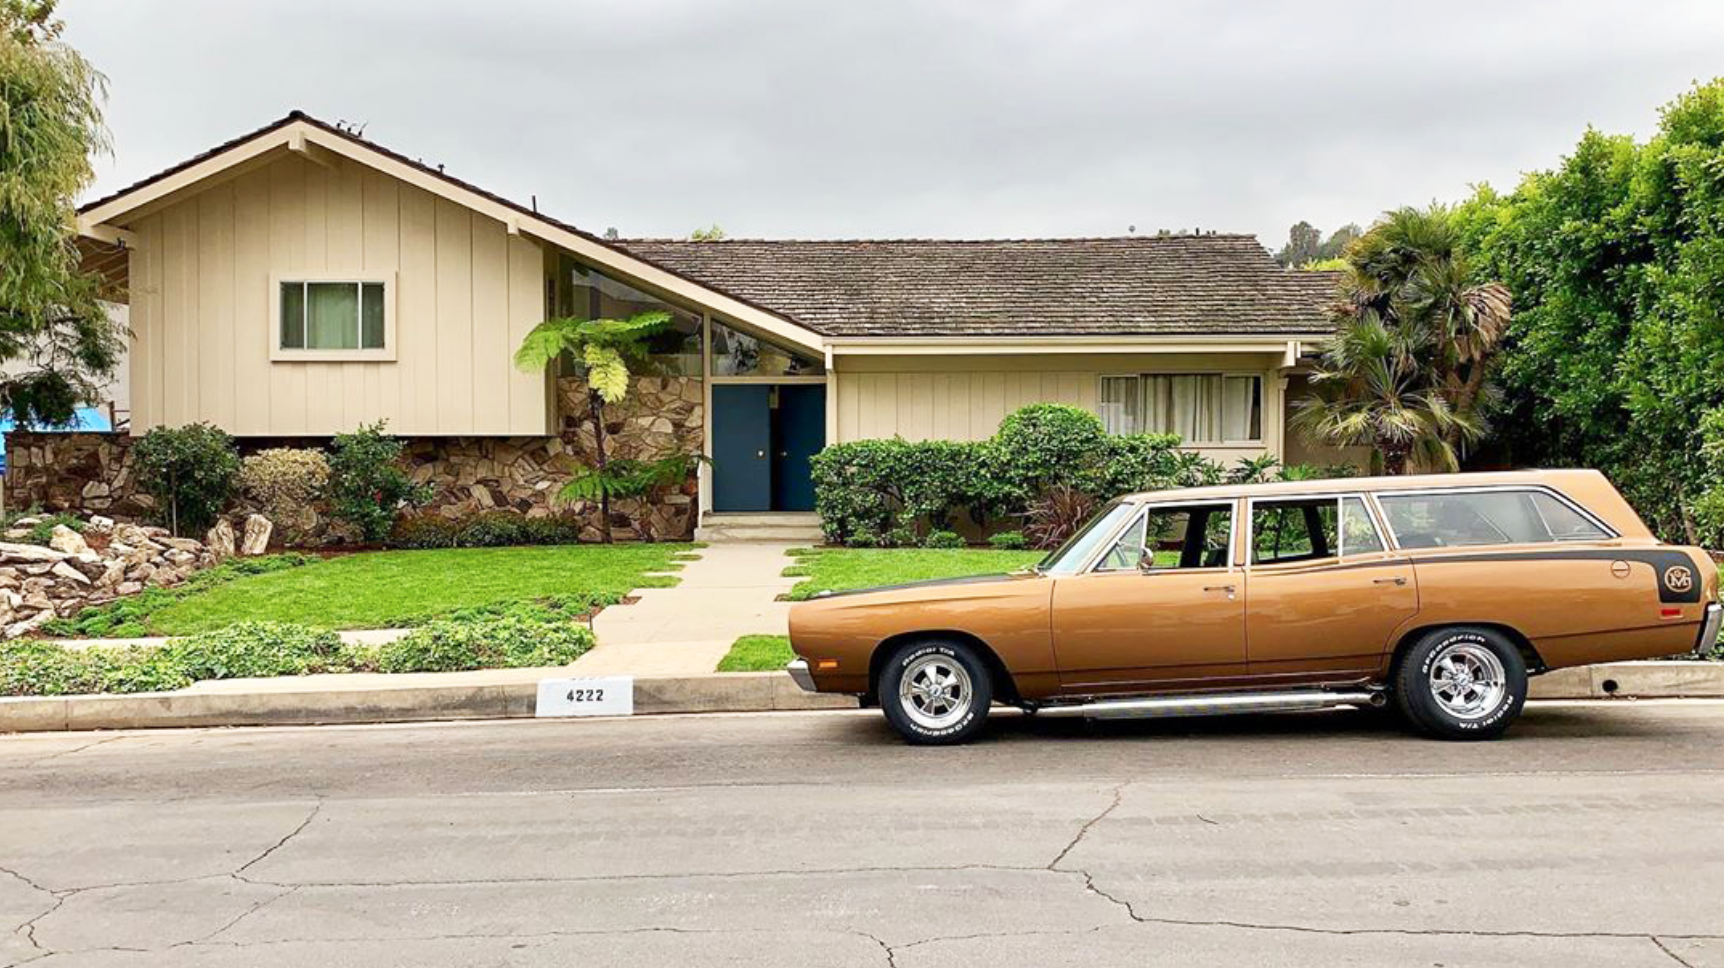 What Is HGTV Doing with The Brady Bunch House?